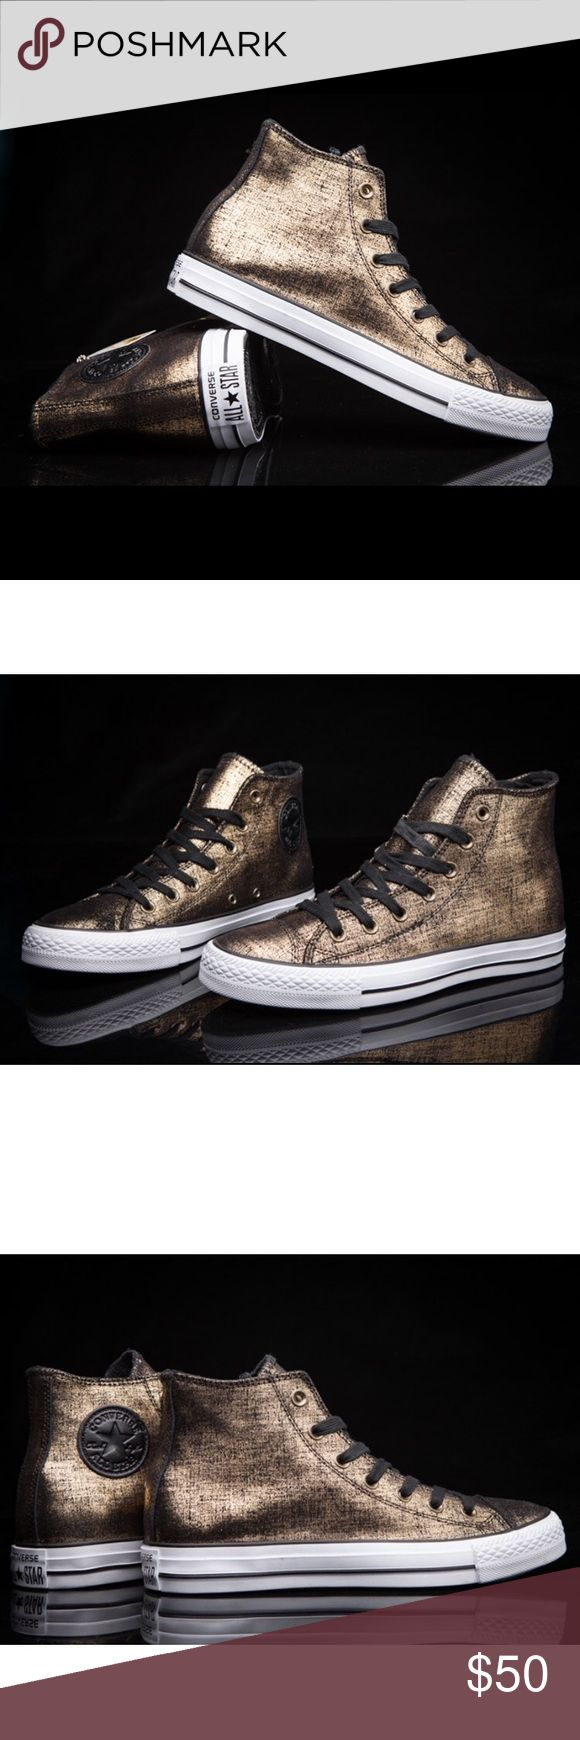 💄FLASH SALE 💄 CONVERSE WOMENS GOLDEN ALL STAR Brand new without box Converse Shoes Sneakers